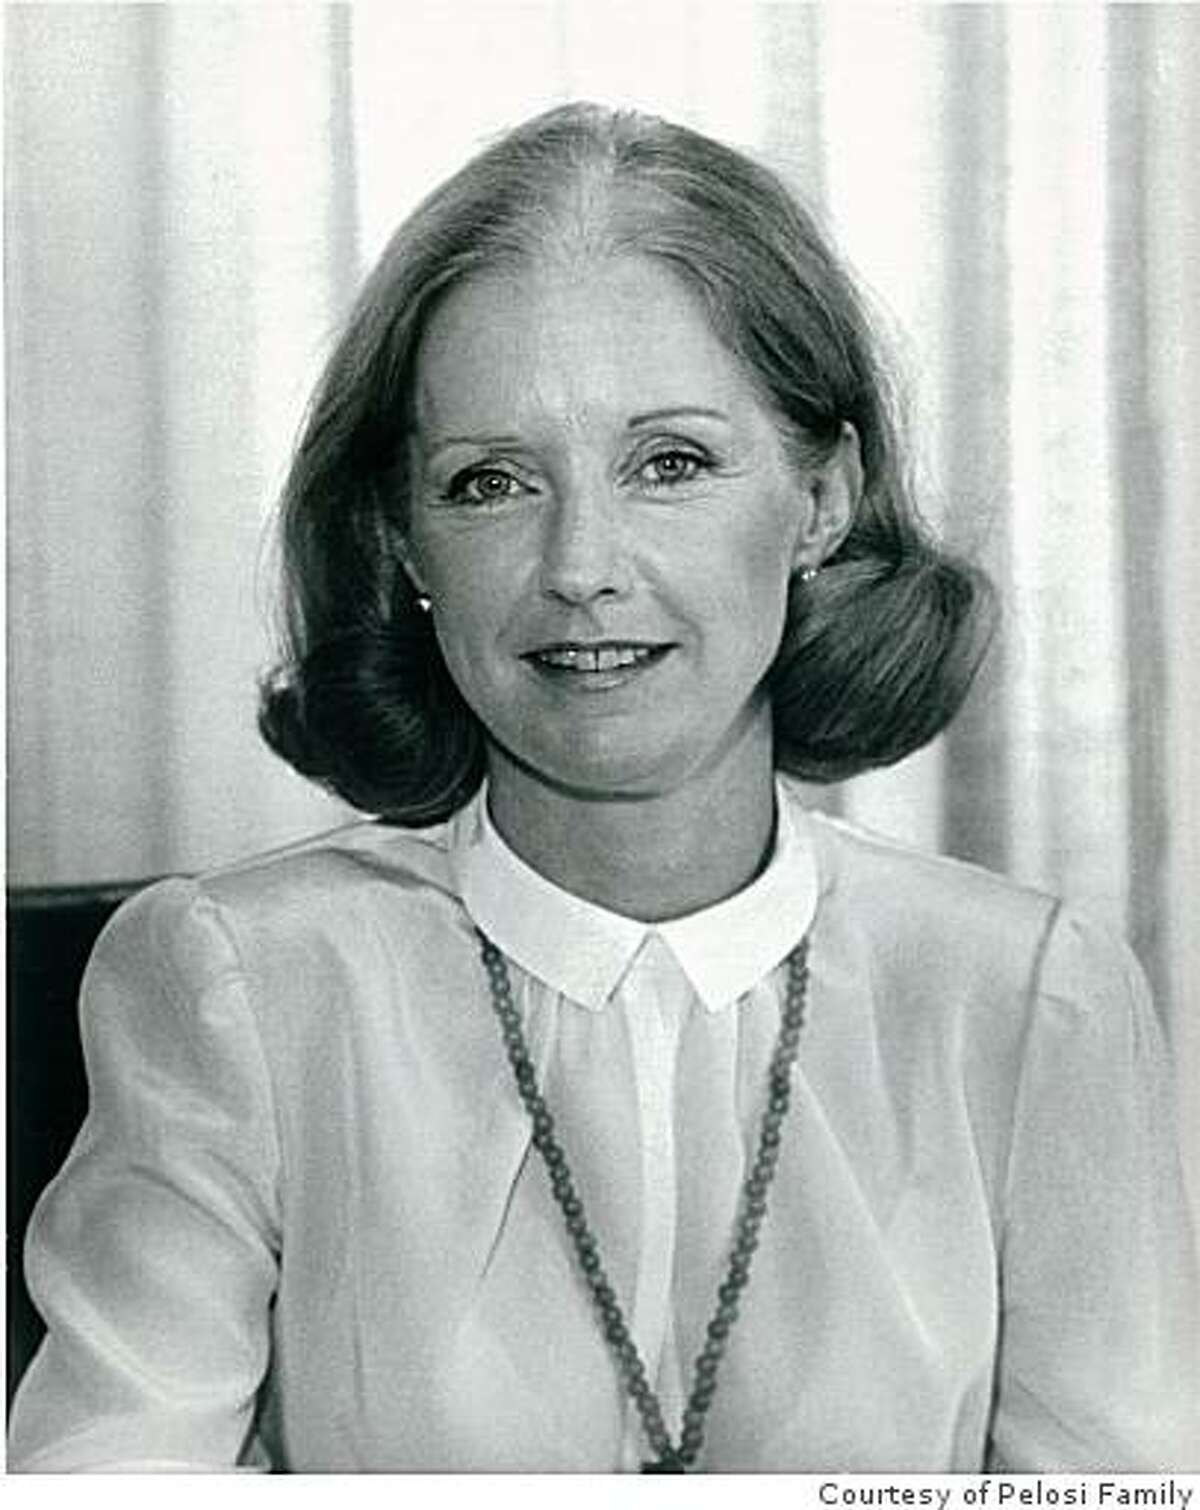 Belinda Barbara Newsom, aunt of San Francisco Mayor Gavin Newsom and President Carter's appointee as U.S. Representative to the United Nations, died Saturday morning at home in San Francisco. She was 73. Photo coutesy of the Pelosi Family.